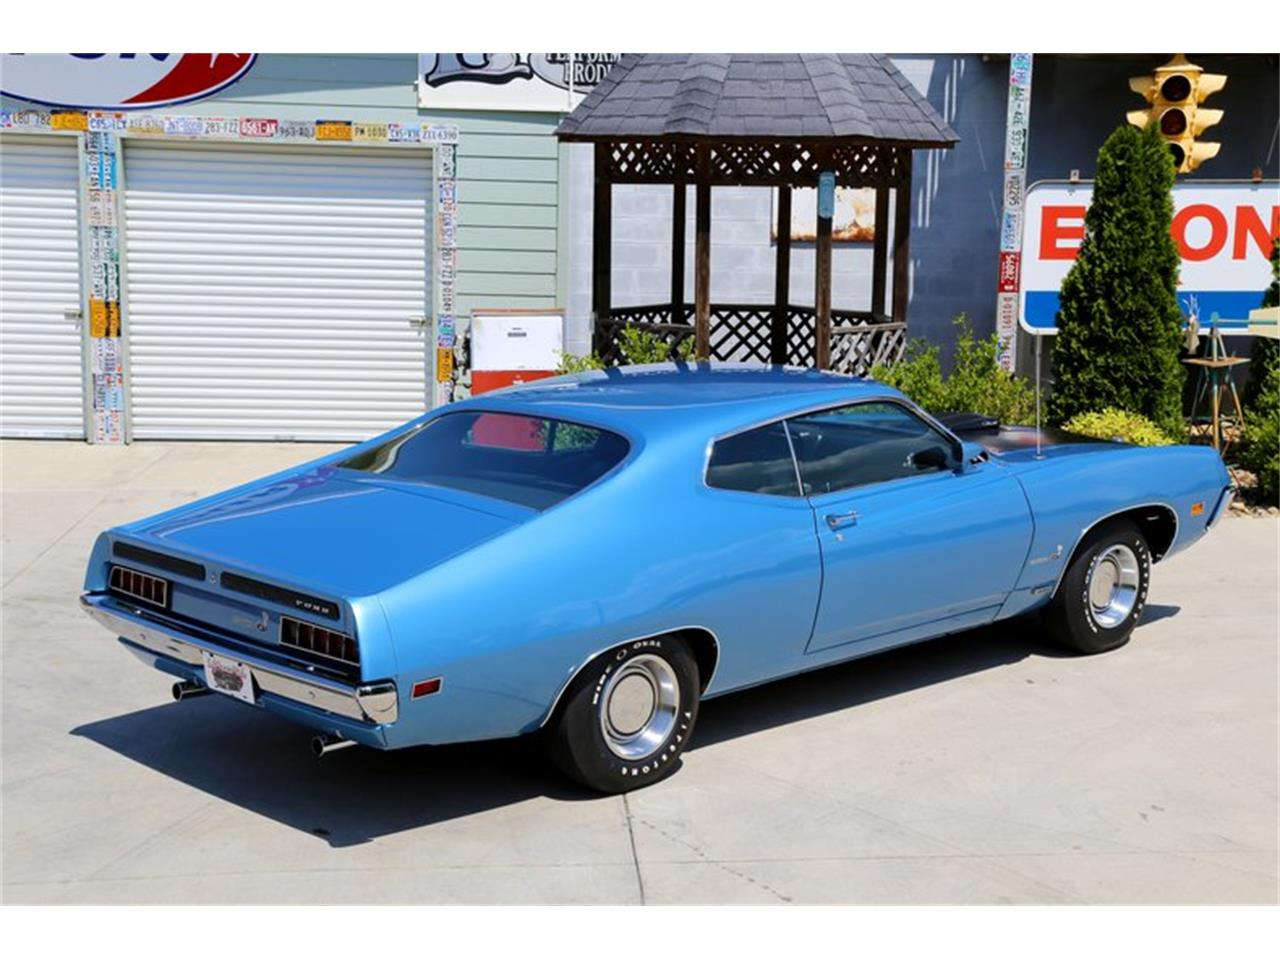 Large Picture of Classic '70 Ford Torino - $64,999.00 - N6PC